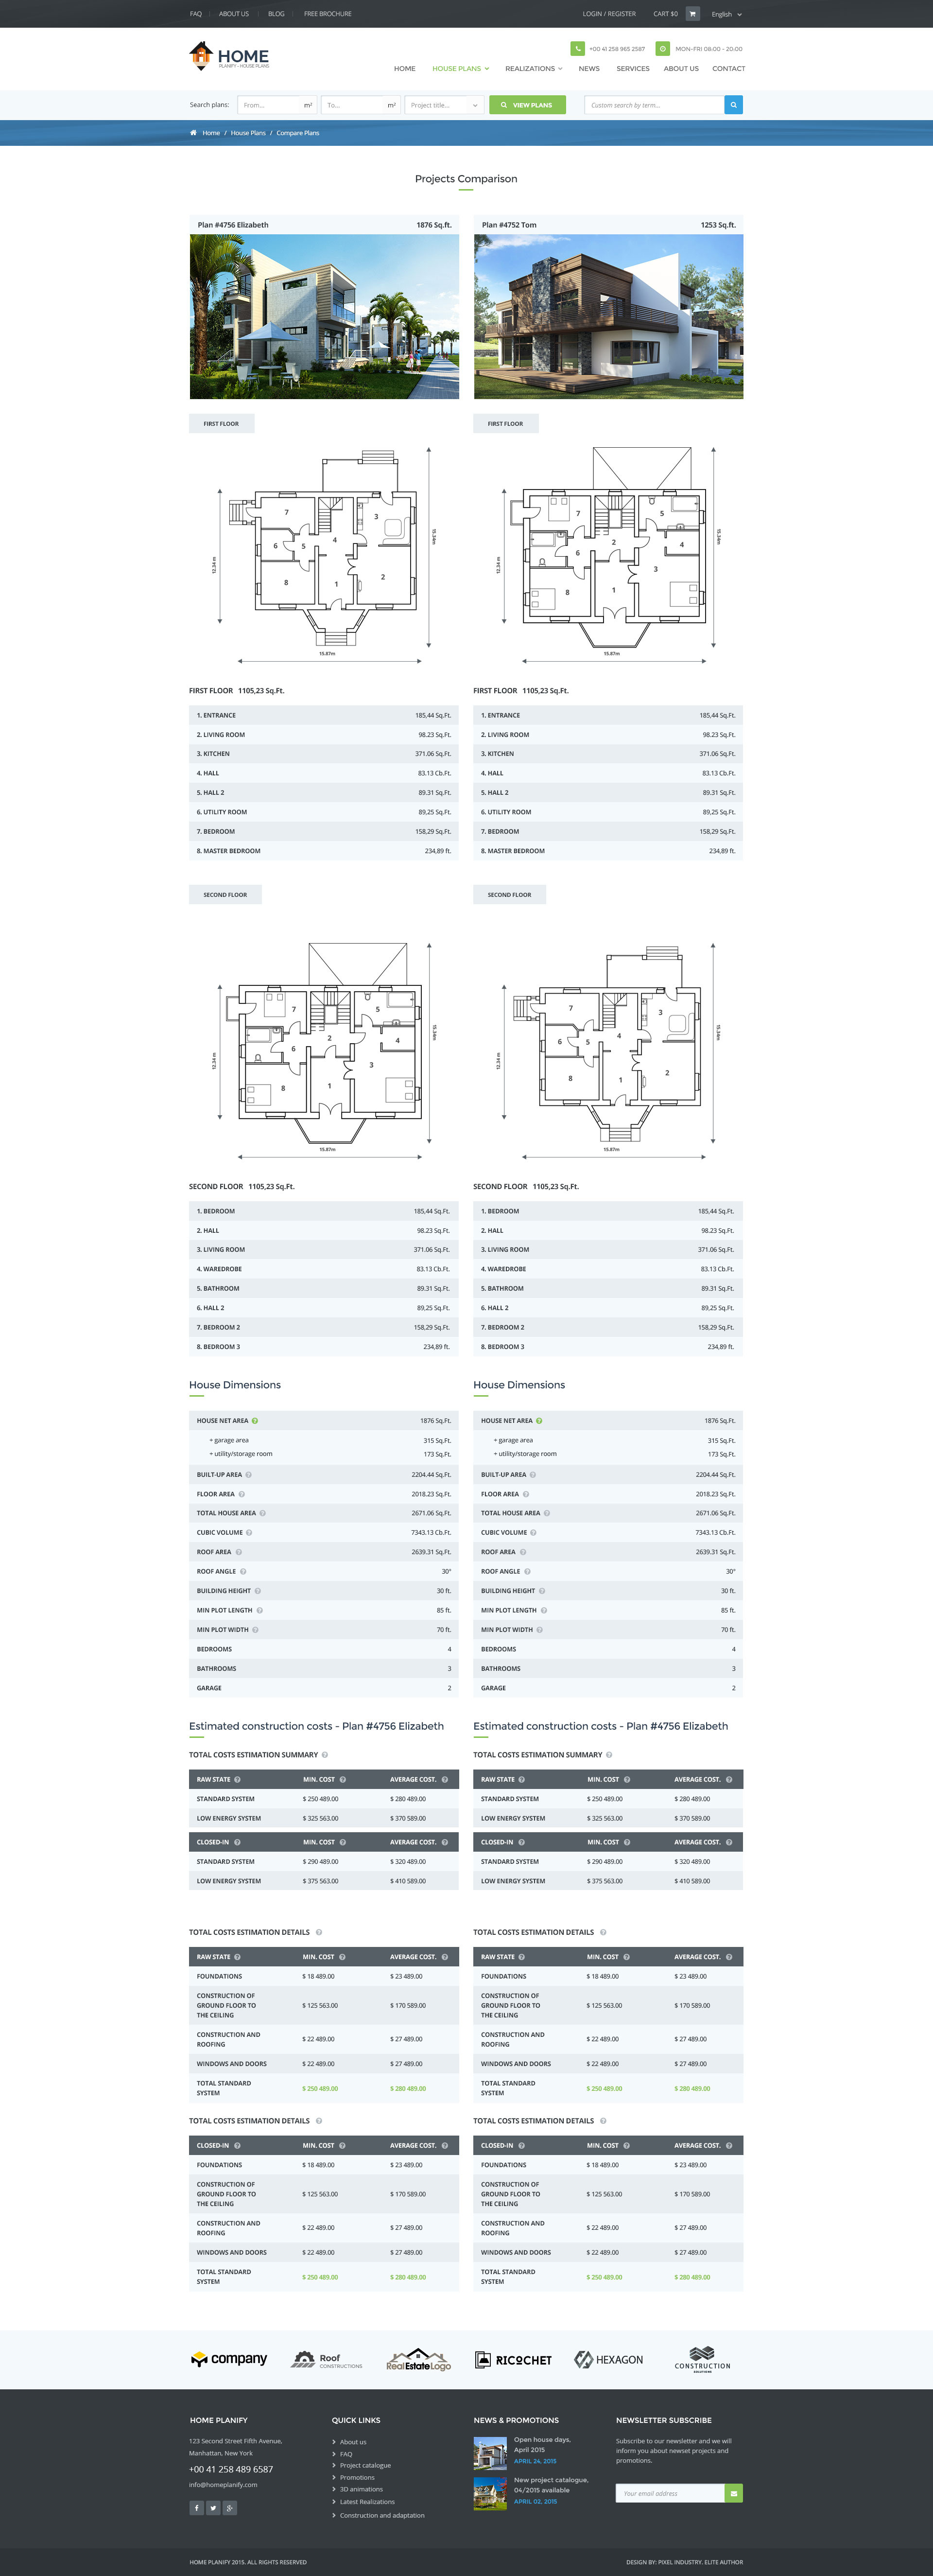 Home Planify - House Plans & onstruction PSD template by pixel ... - ^